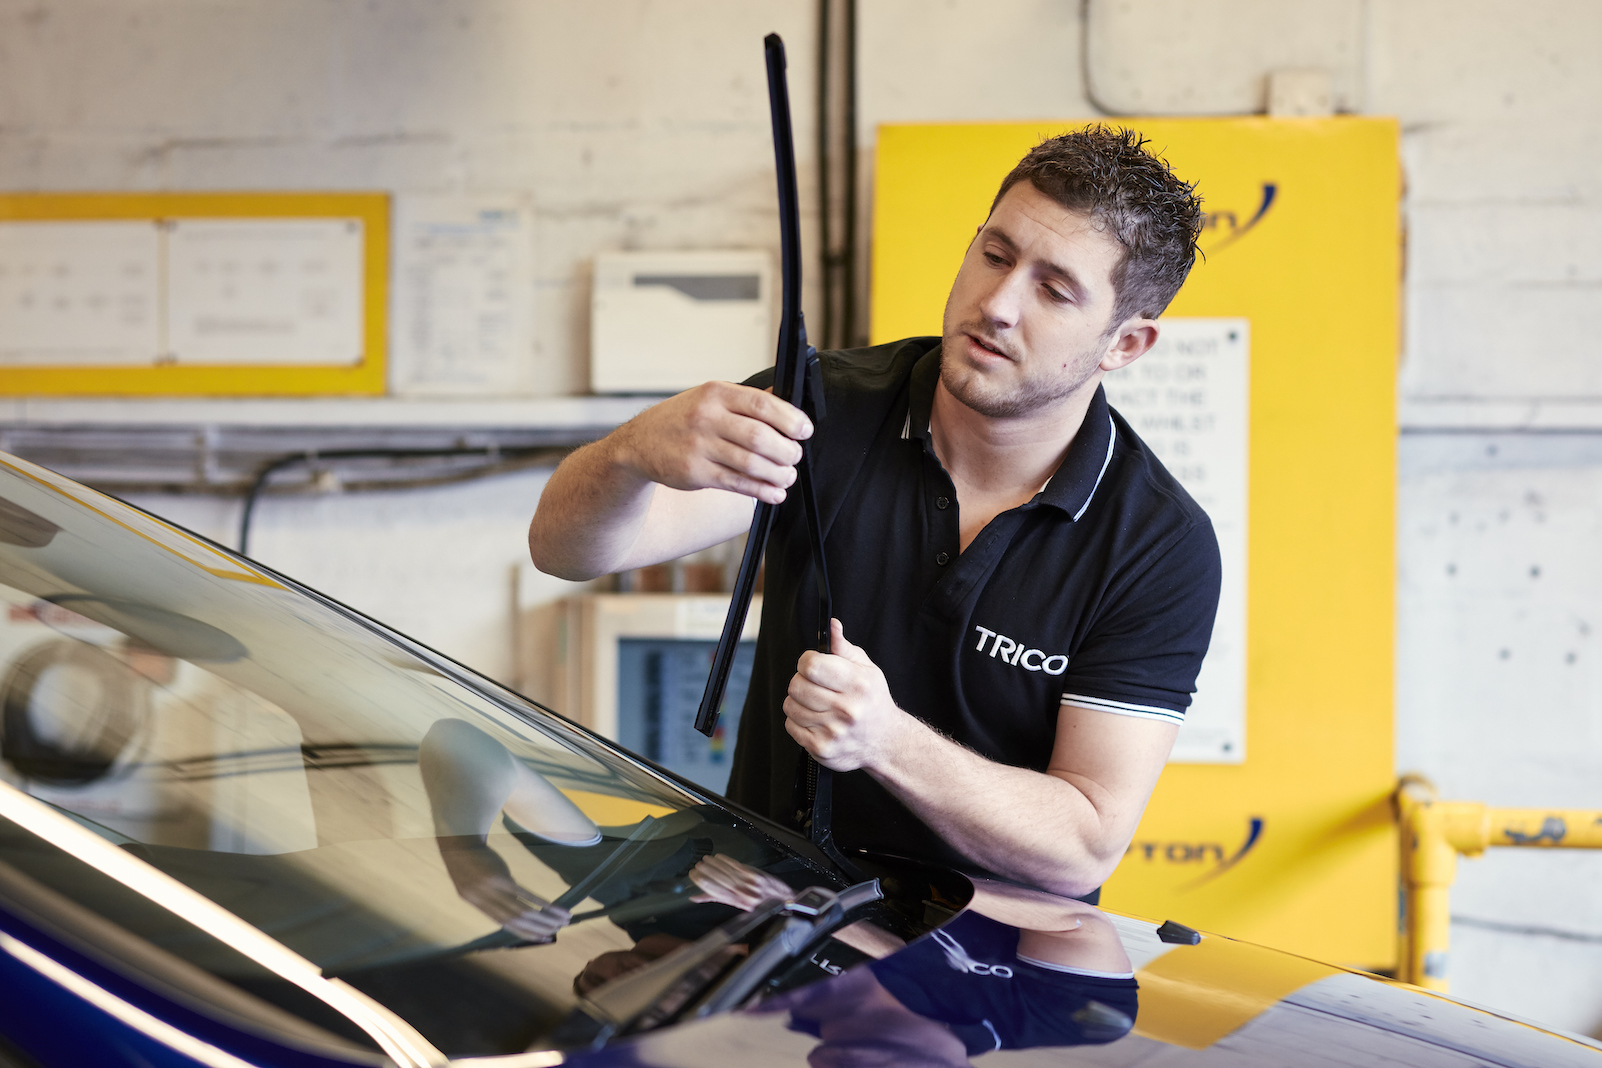 Expert showcases wiper blade fitting videos on YouTube